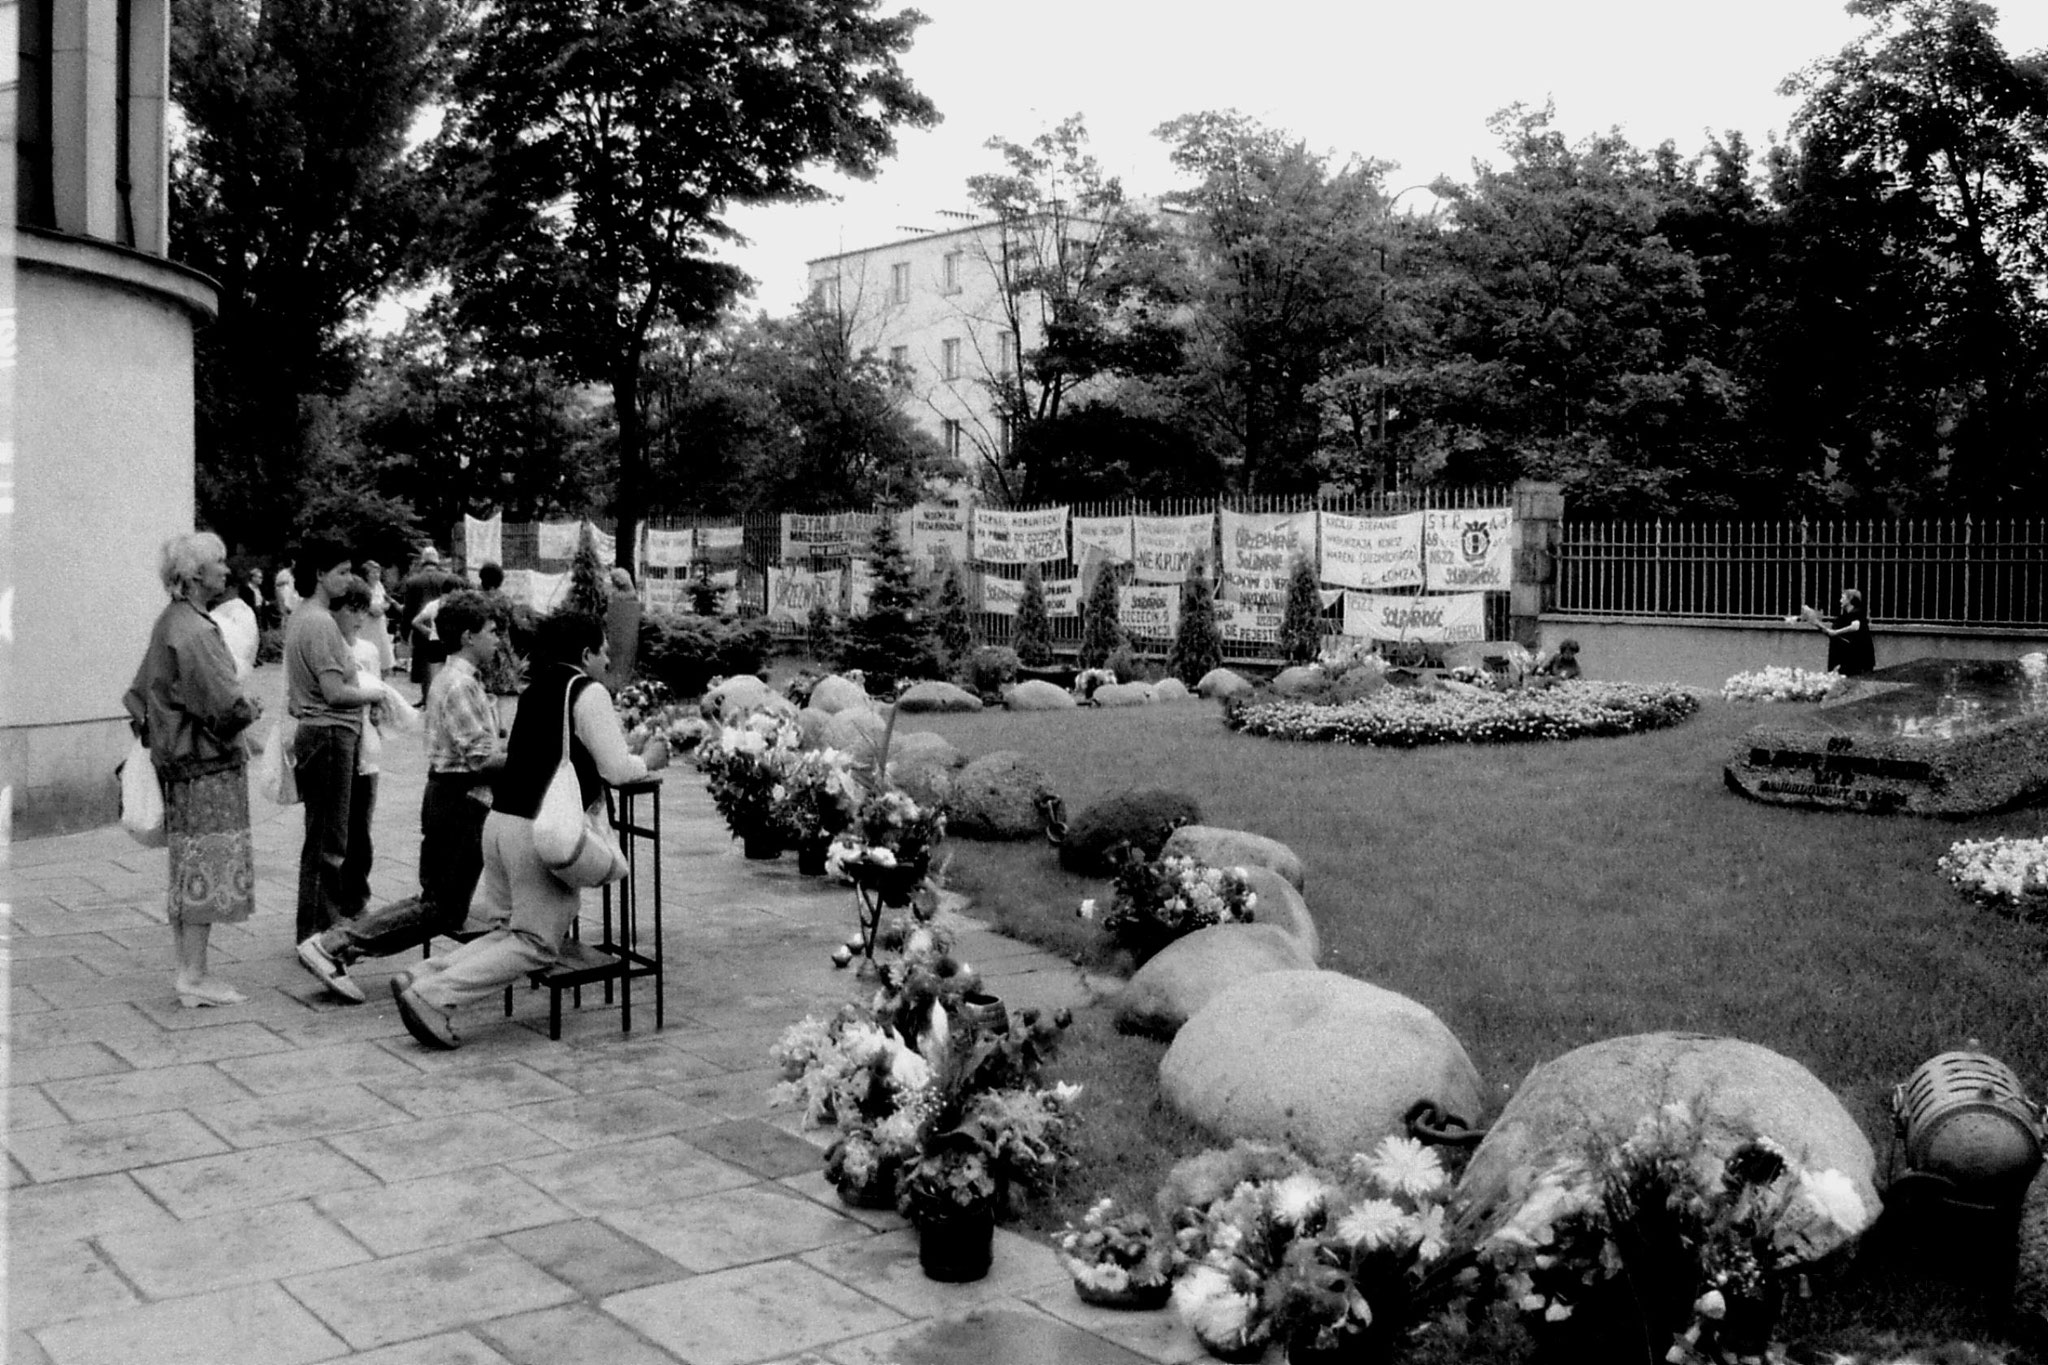 22/8/1988: 21: St Stanislaus Kostka Church where Father Jerzy Popieluszko buried